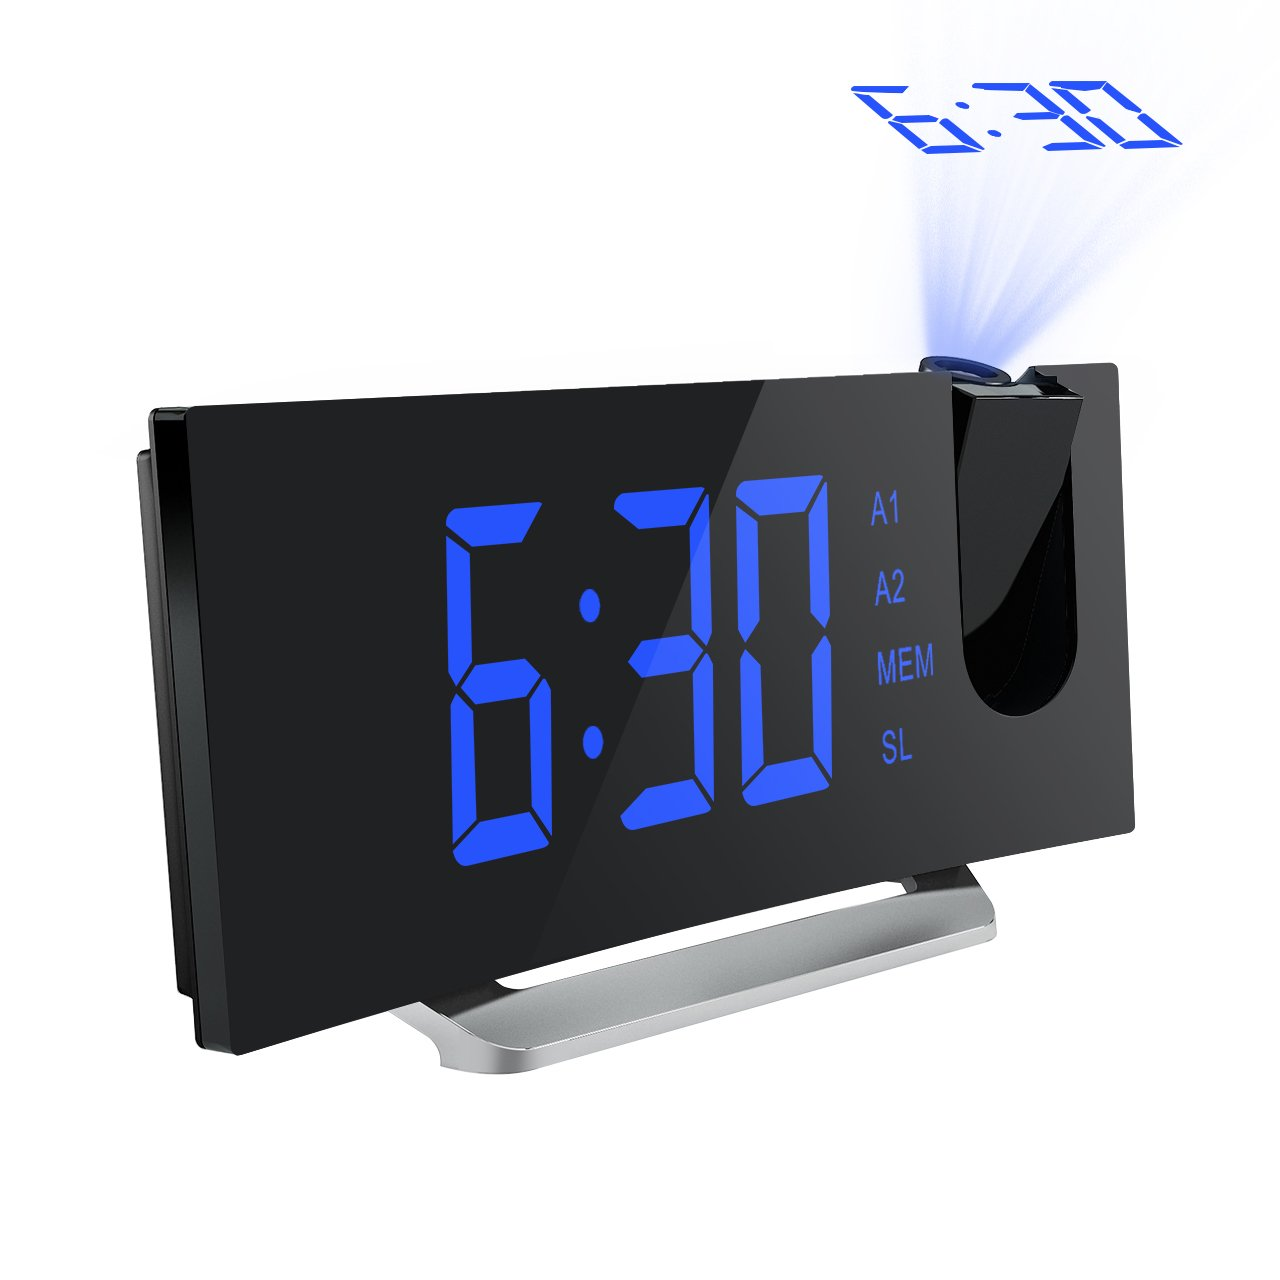 Mpow Projection Clock, FM Radio Alarm Clock, Curved-Screen Digital Alarm Clock, 5'' LED Display with Dimmer, Dual Alarm with USB Charging Port, 12/24 Hours, Backup Battery for Clock Setting